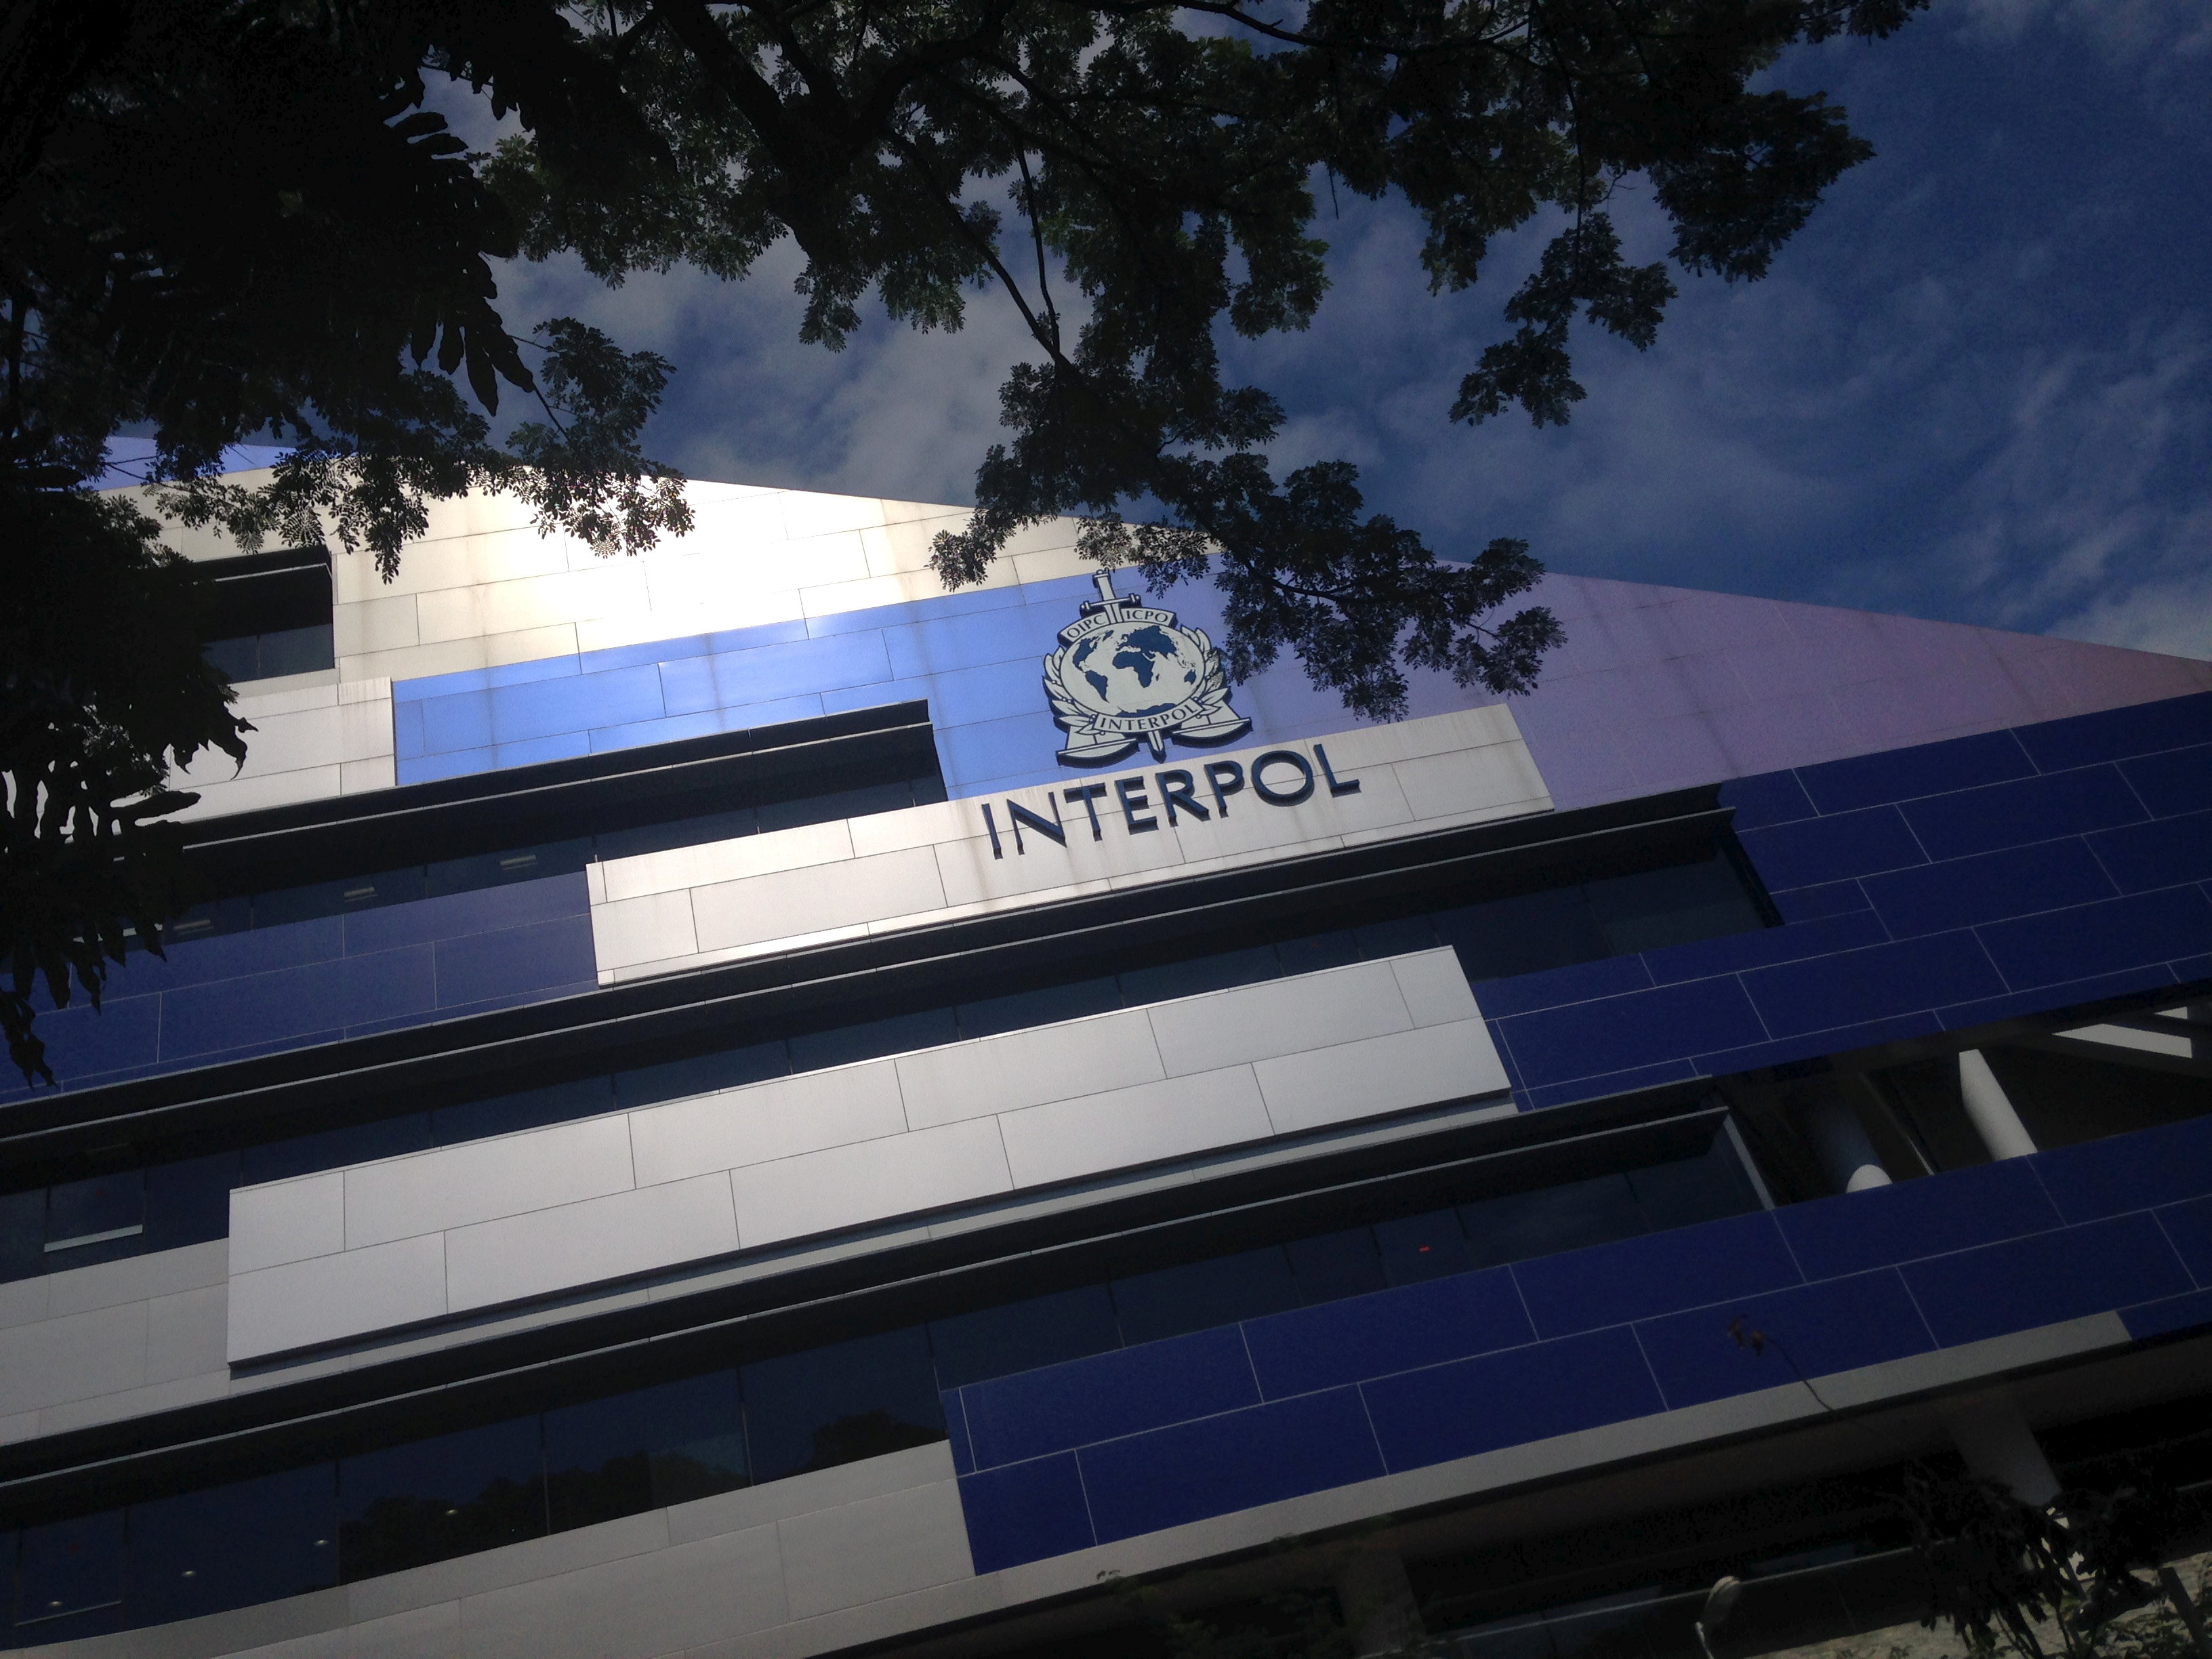 FILE PHOTO: Interpol's headquarters are seen in Singapore November 18, 2015. REUTERS/Thomas White/File Photo